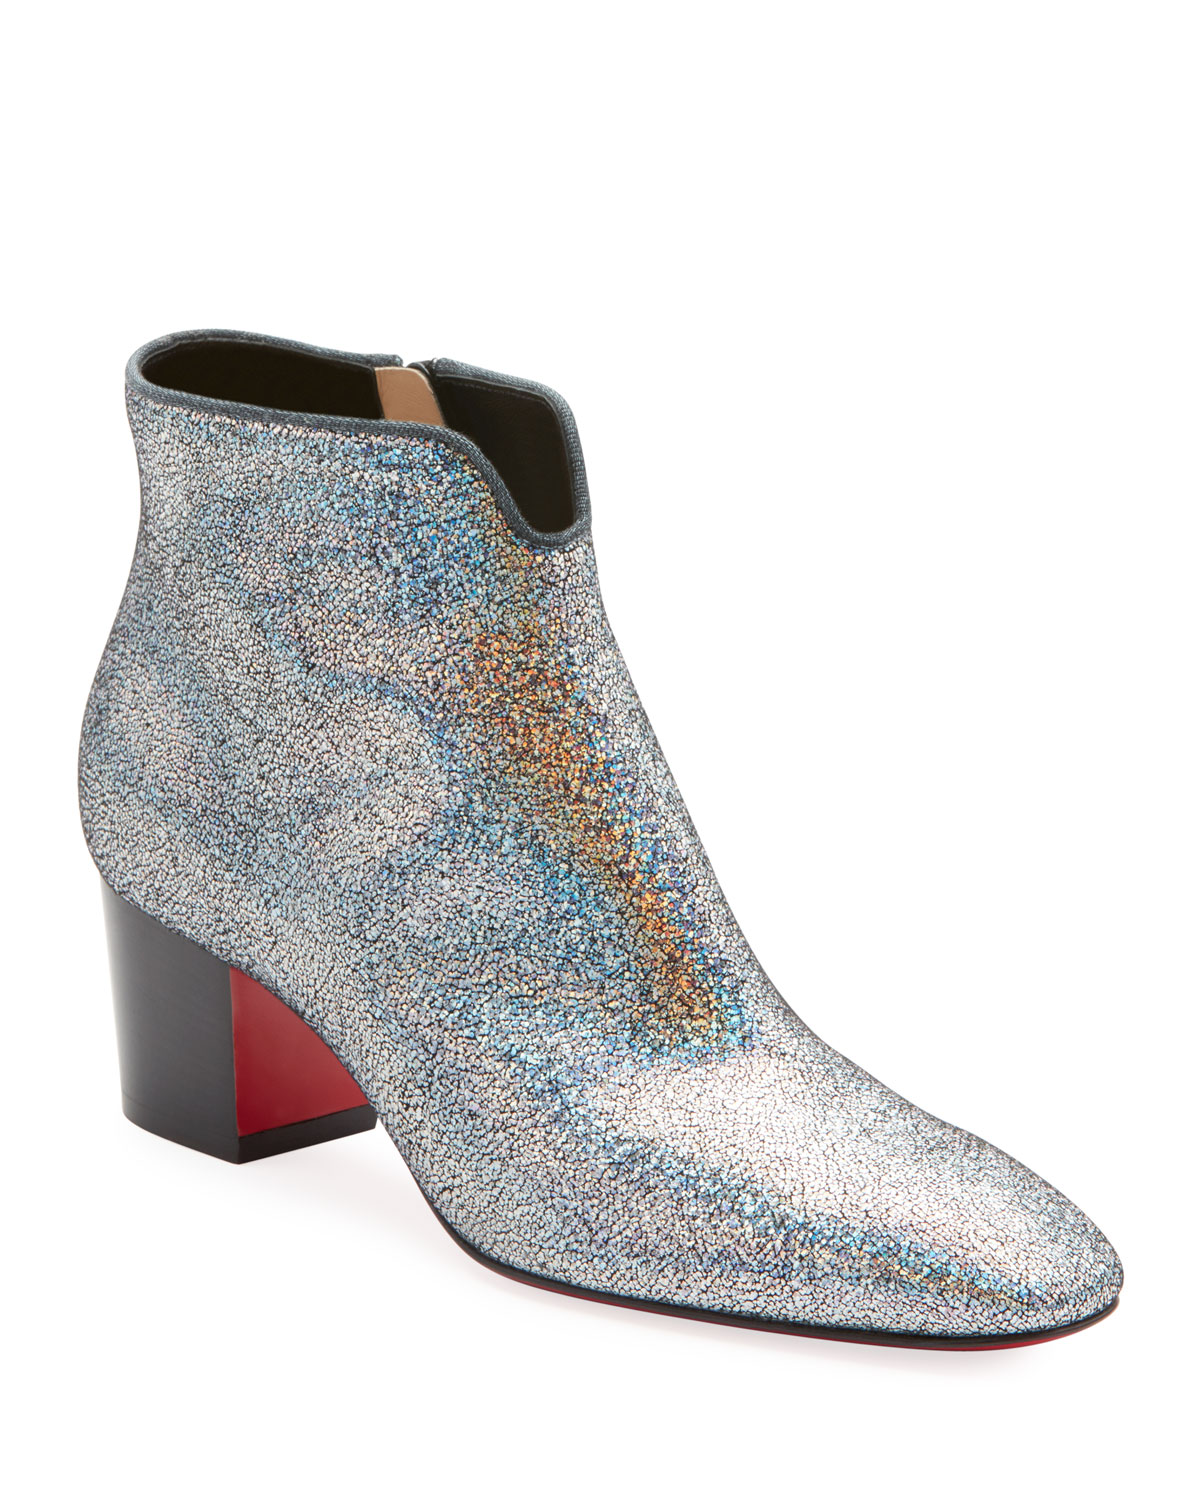 66d0689c91f7 Christian Louboutin Disco 70s Low-Heel Glitter Red Sole Booties ...